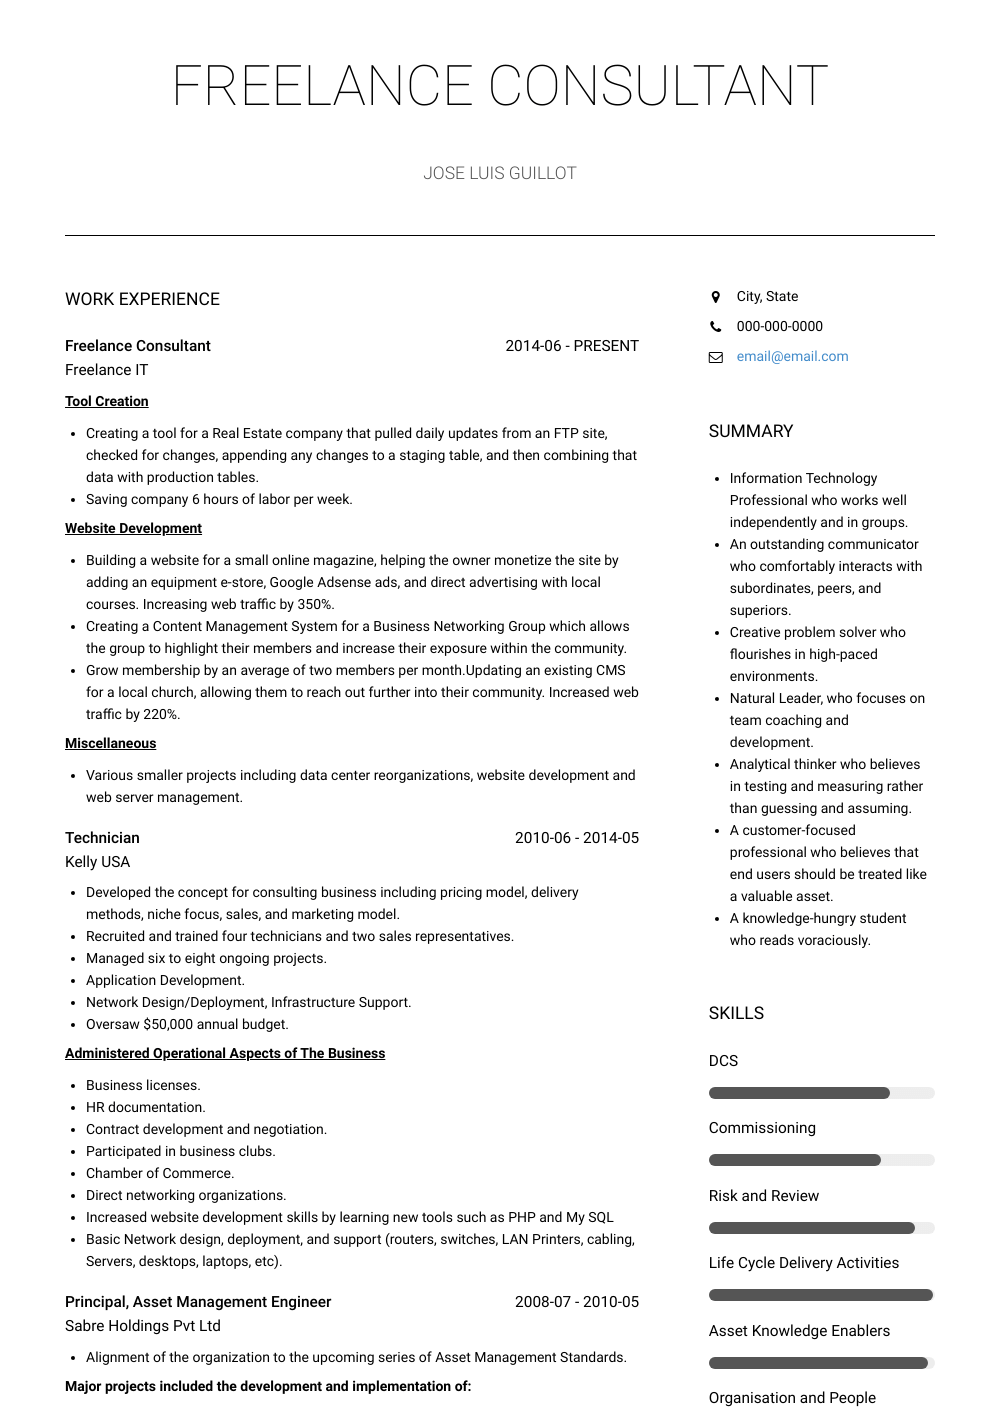 Freelance Consultant Resume Sample and Template